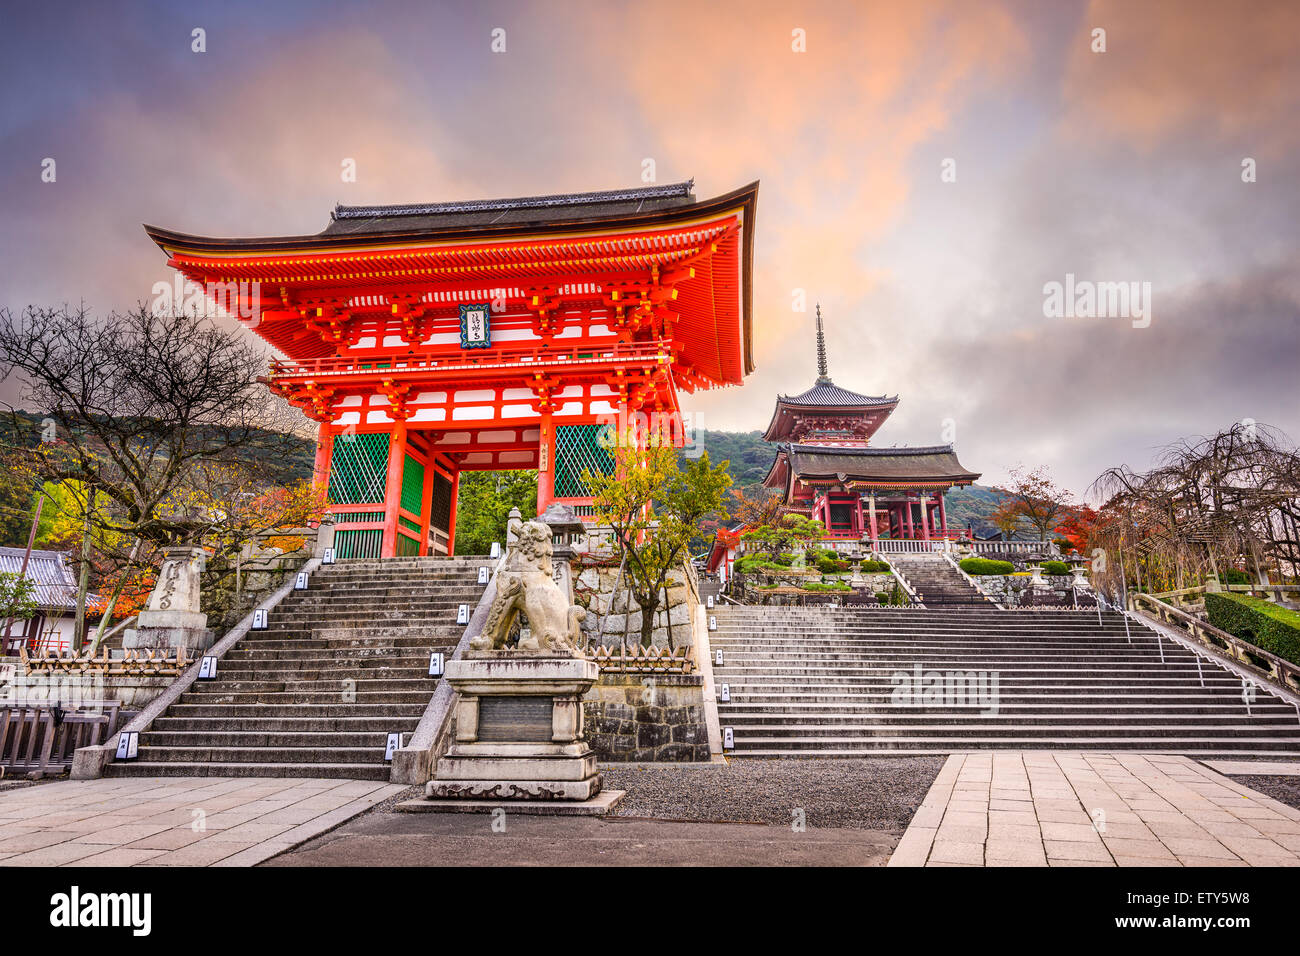 Kyoto, Japan at Kiyomizu Temple in the morning. - Stock Image